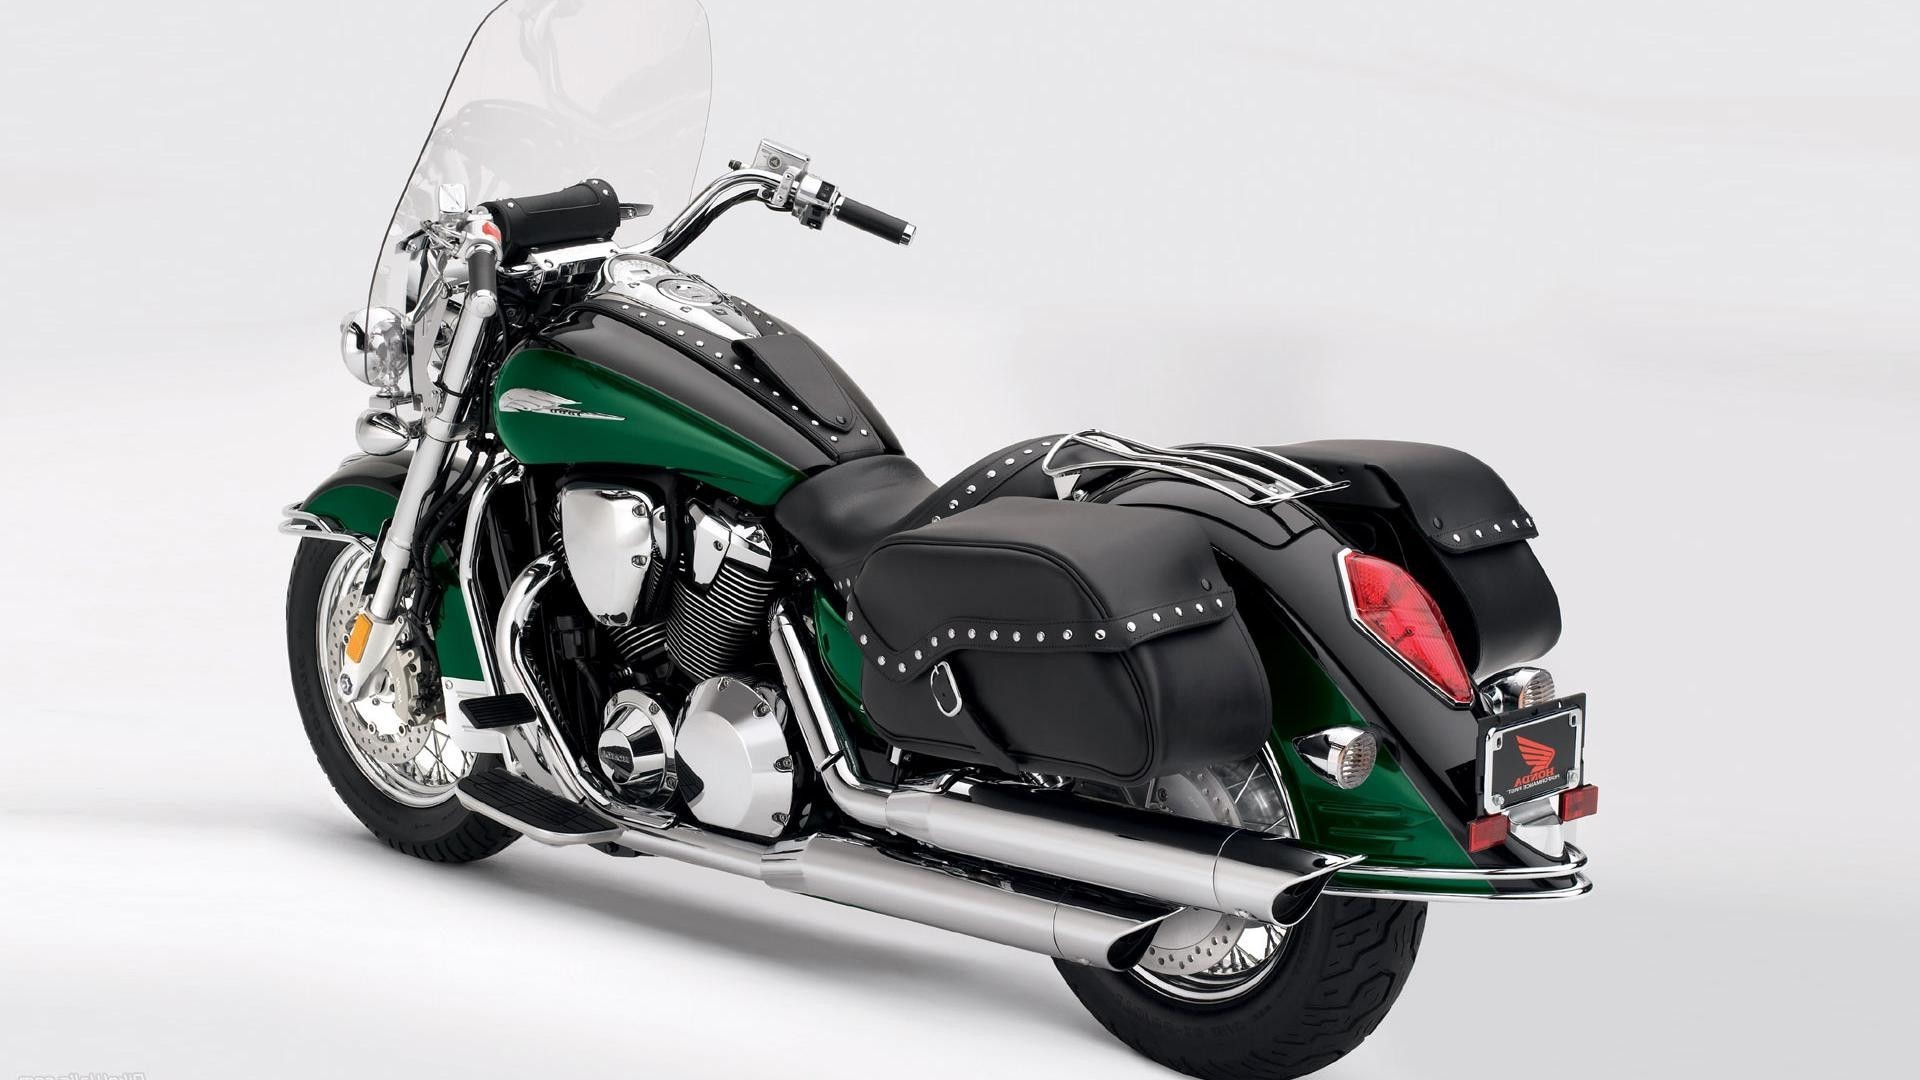 Harley davidson android wallpapers for free - Free harley davidson wallpaper for android ...